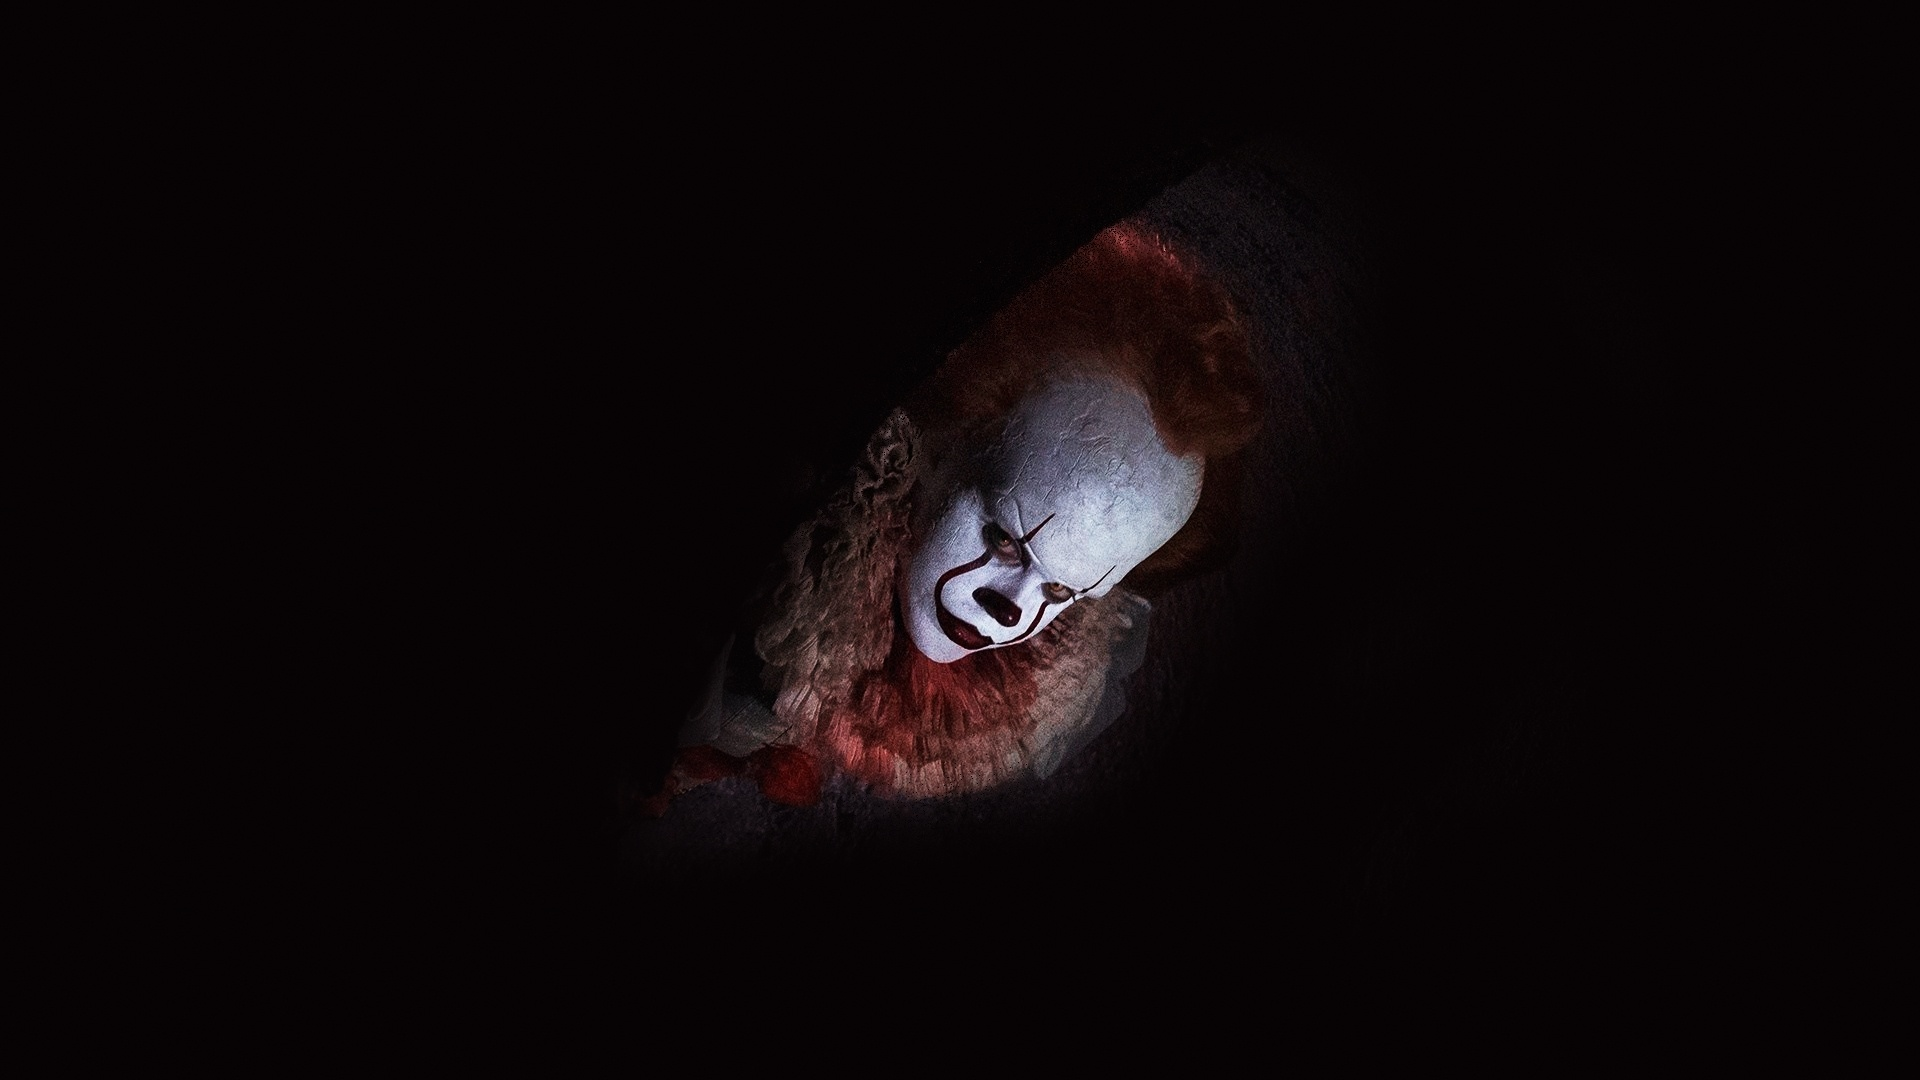 Pennywise best background